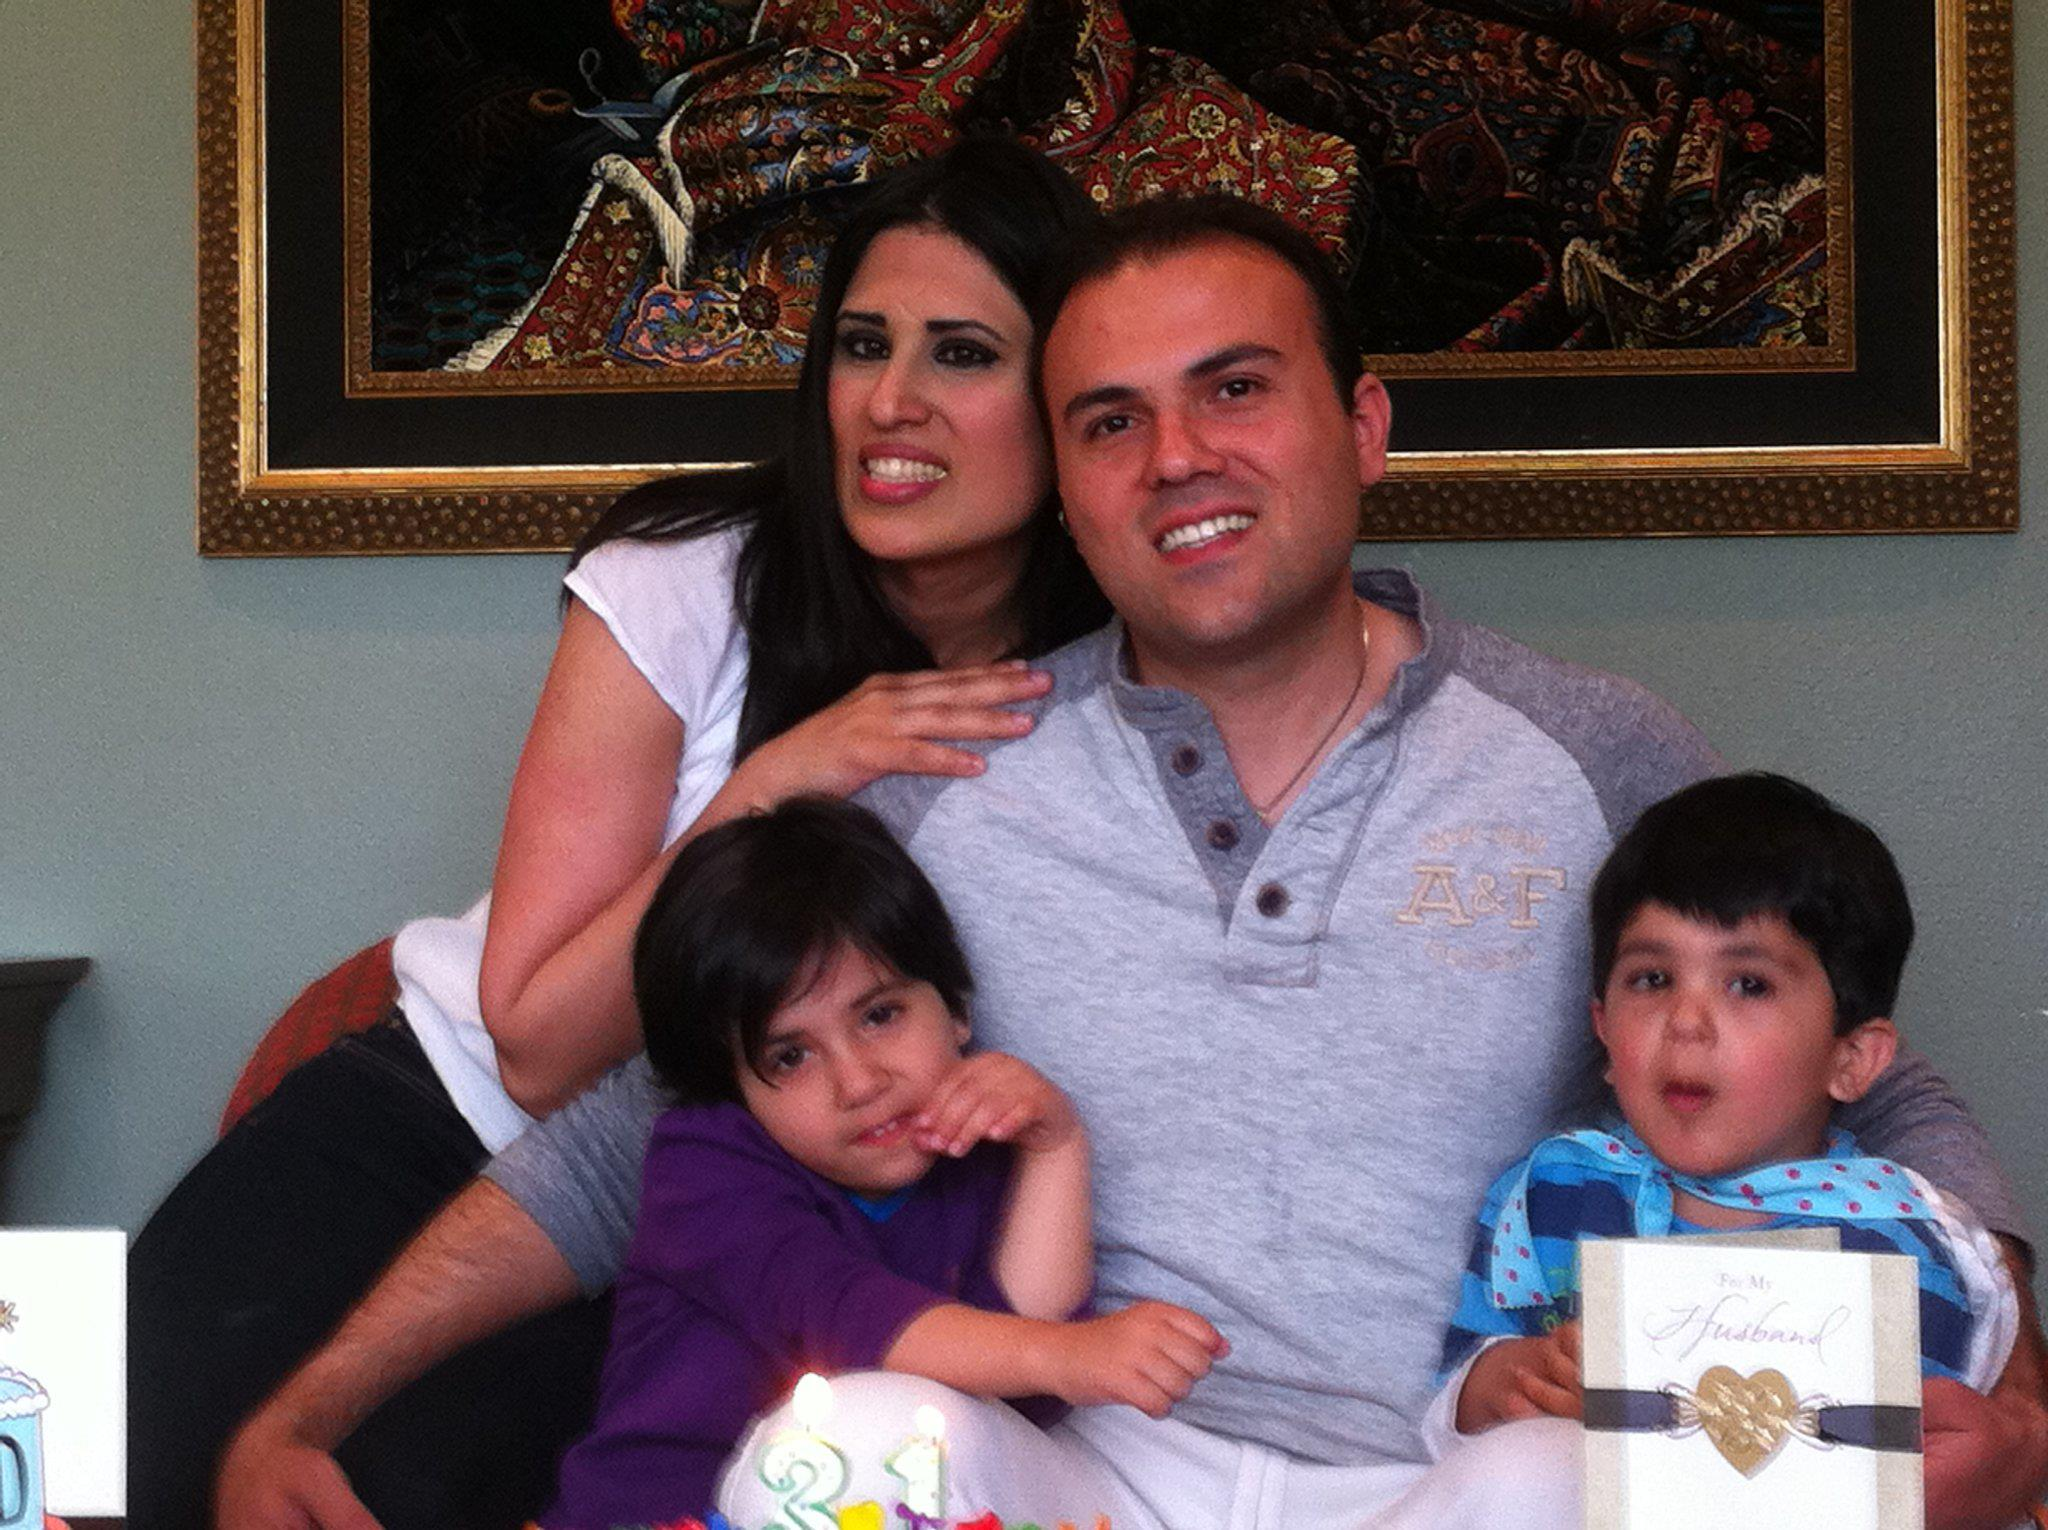 Abedini threatened with more jail time